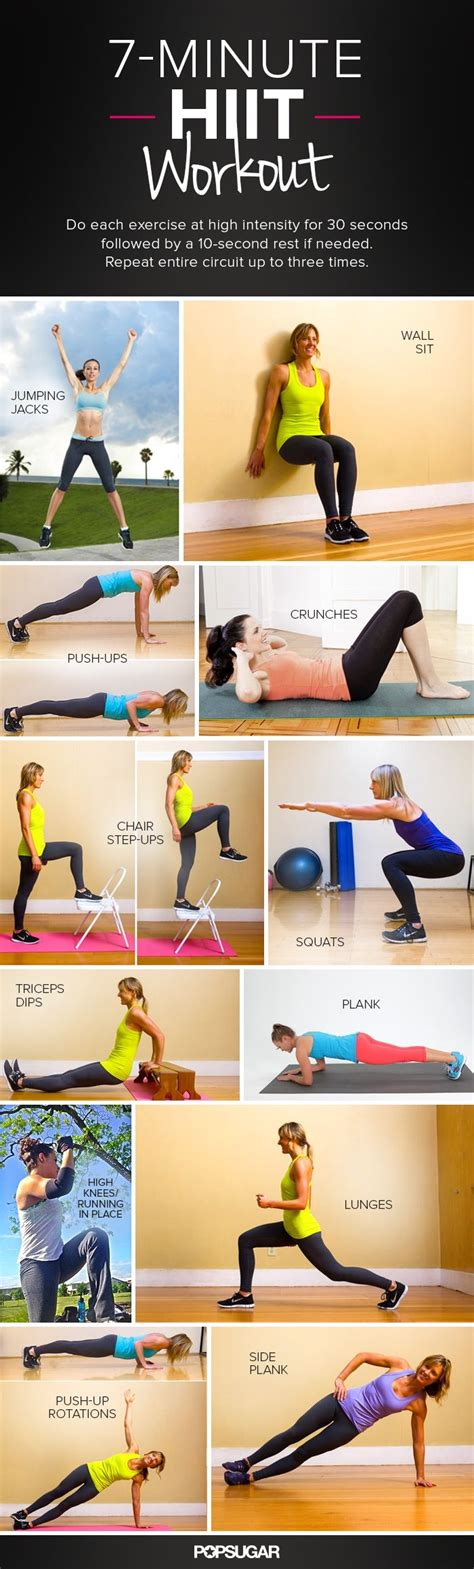 minute hiit workout pictures   images